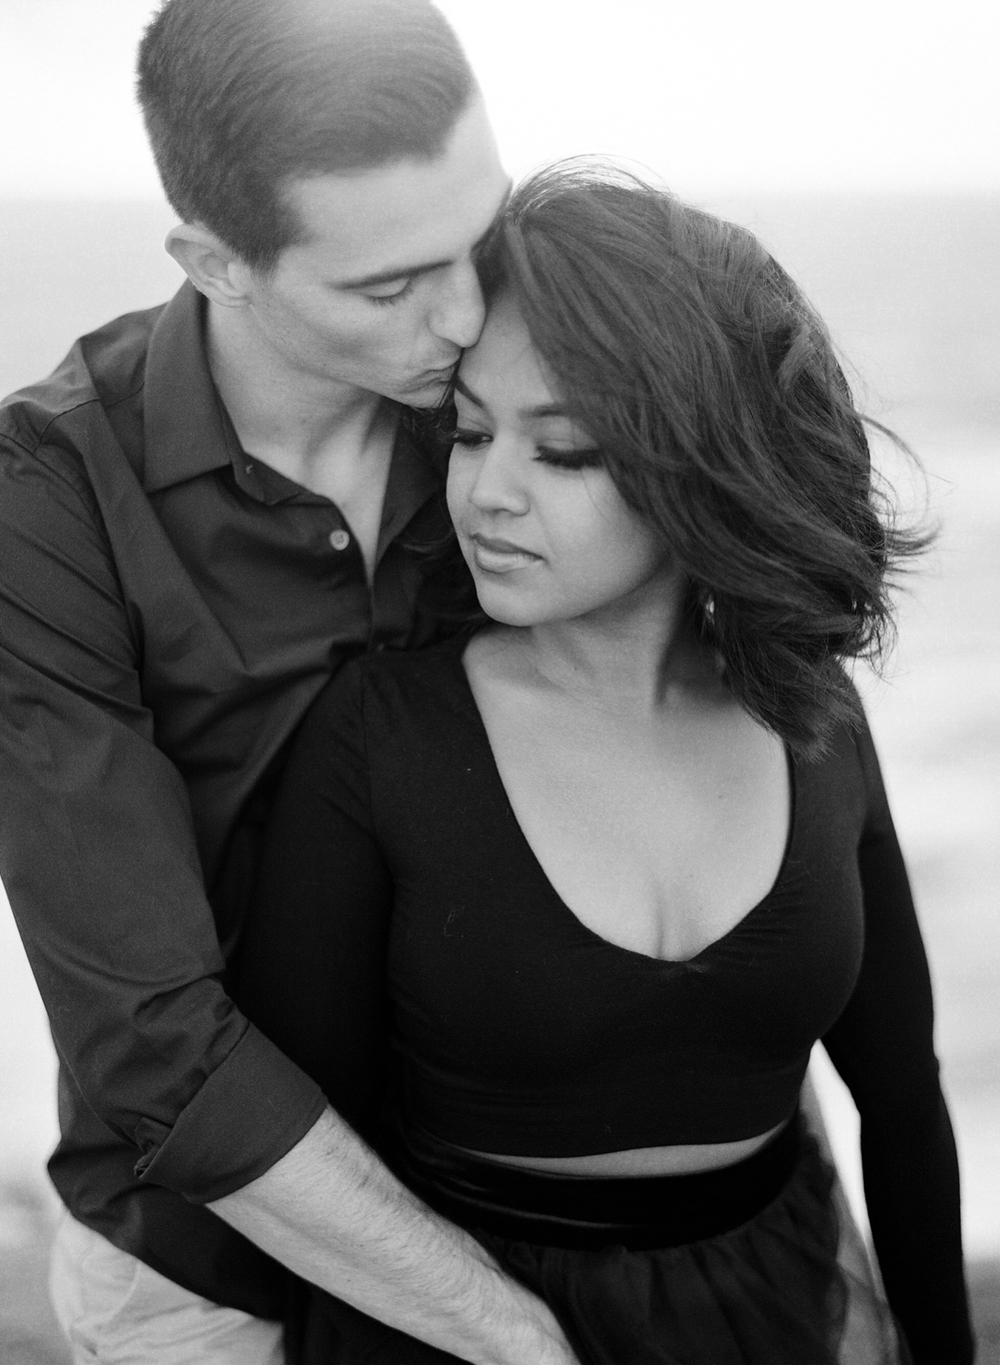 Coastal Sydney couples session by Mr Edwards Photography_0737_1168.jpg